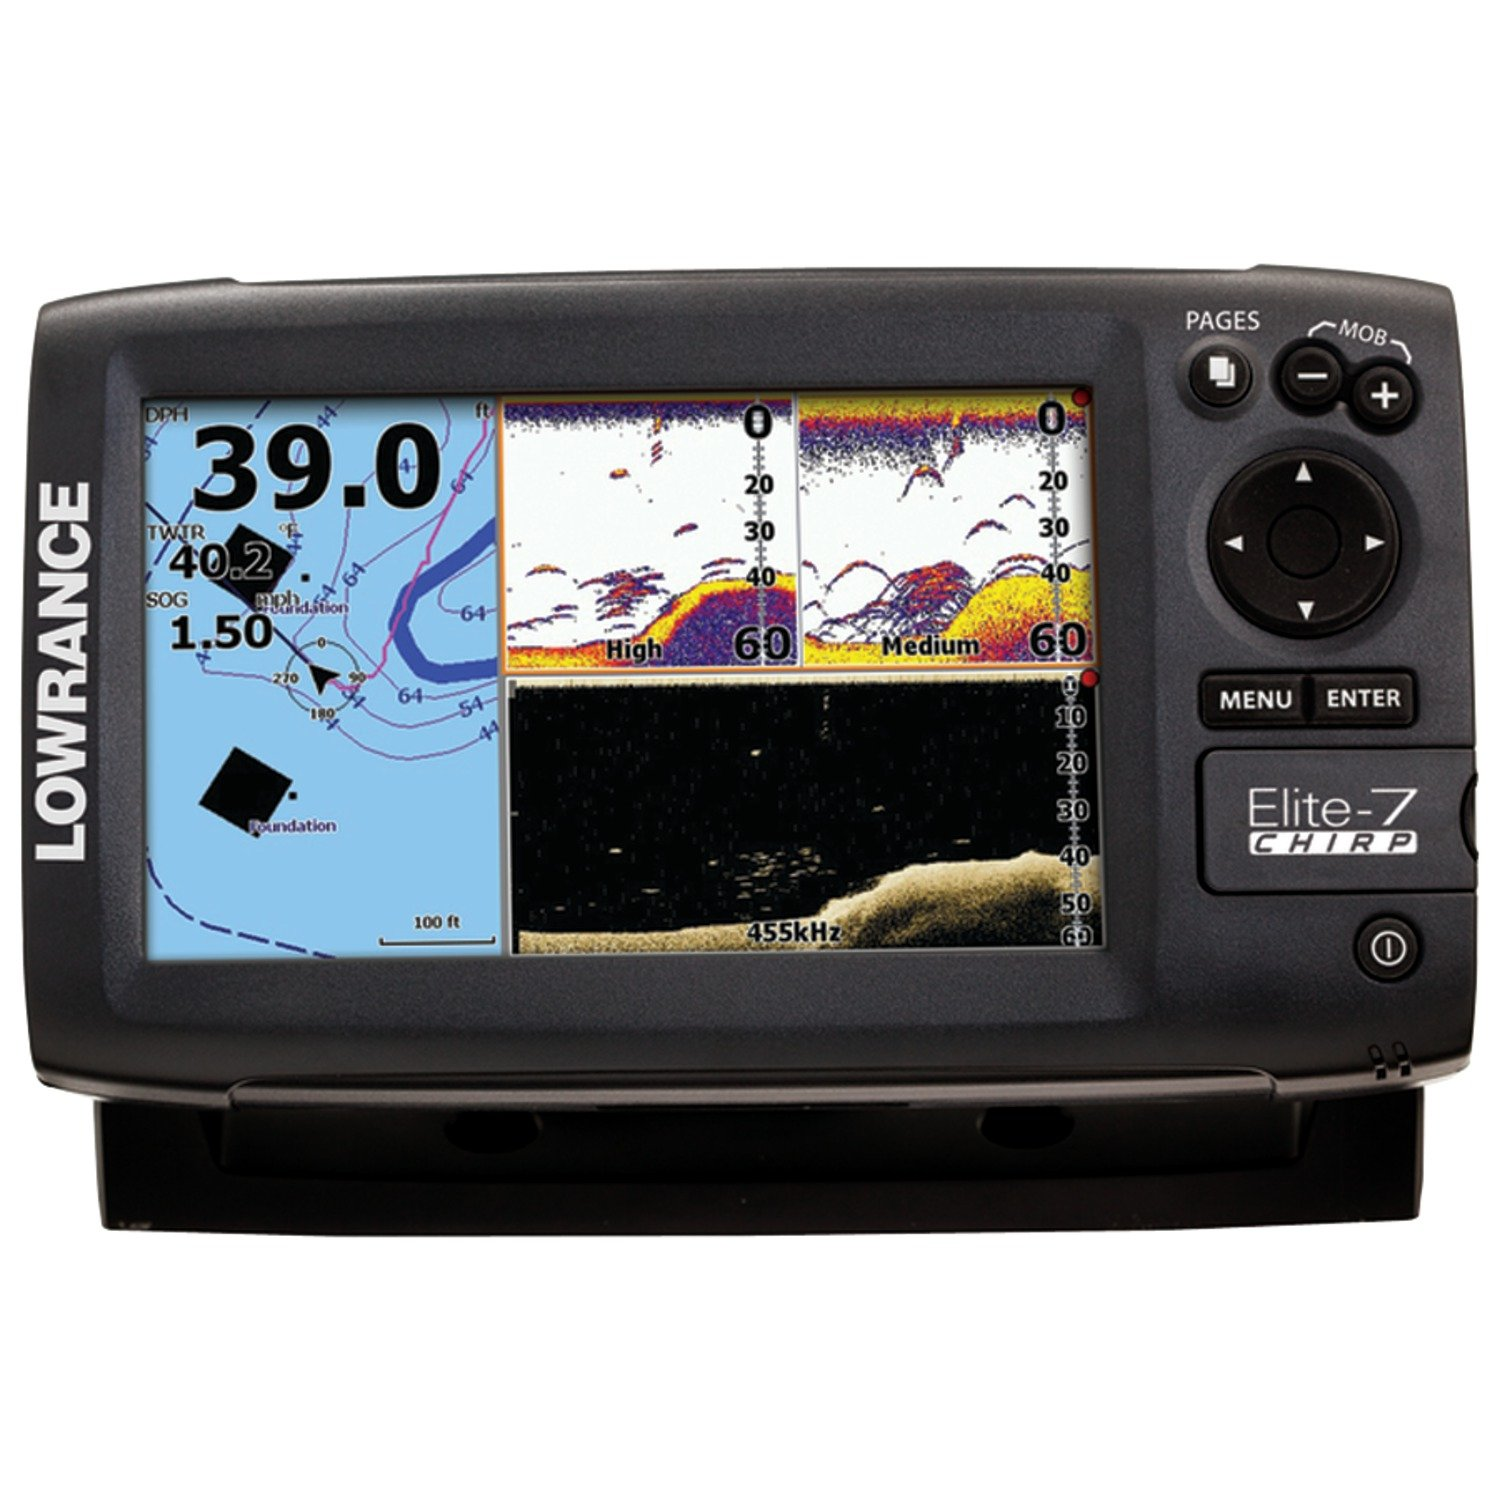 Lowrance Elite 7 Chirp Fishfinder Chartplotter With 83 Wiring Diagram Hook 200 455 800 Khz Transducer Cell Phones Accessories